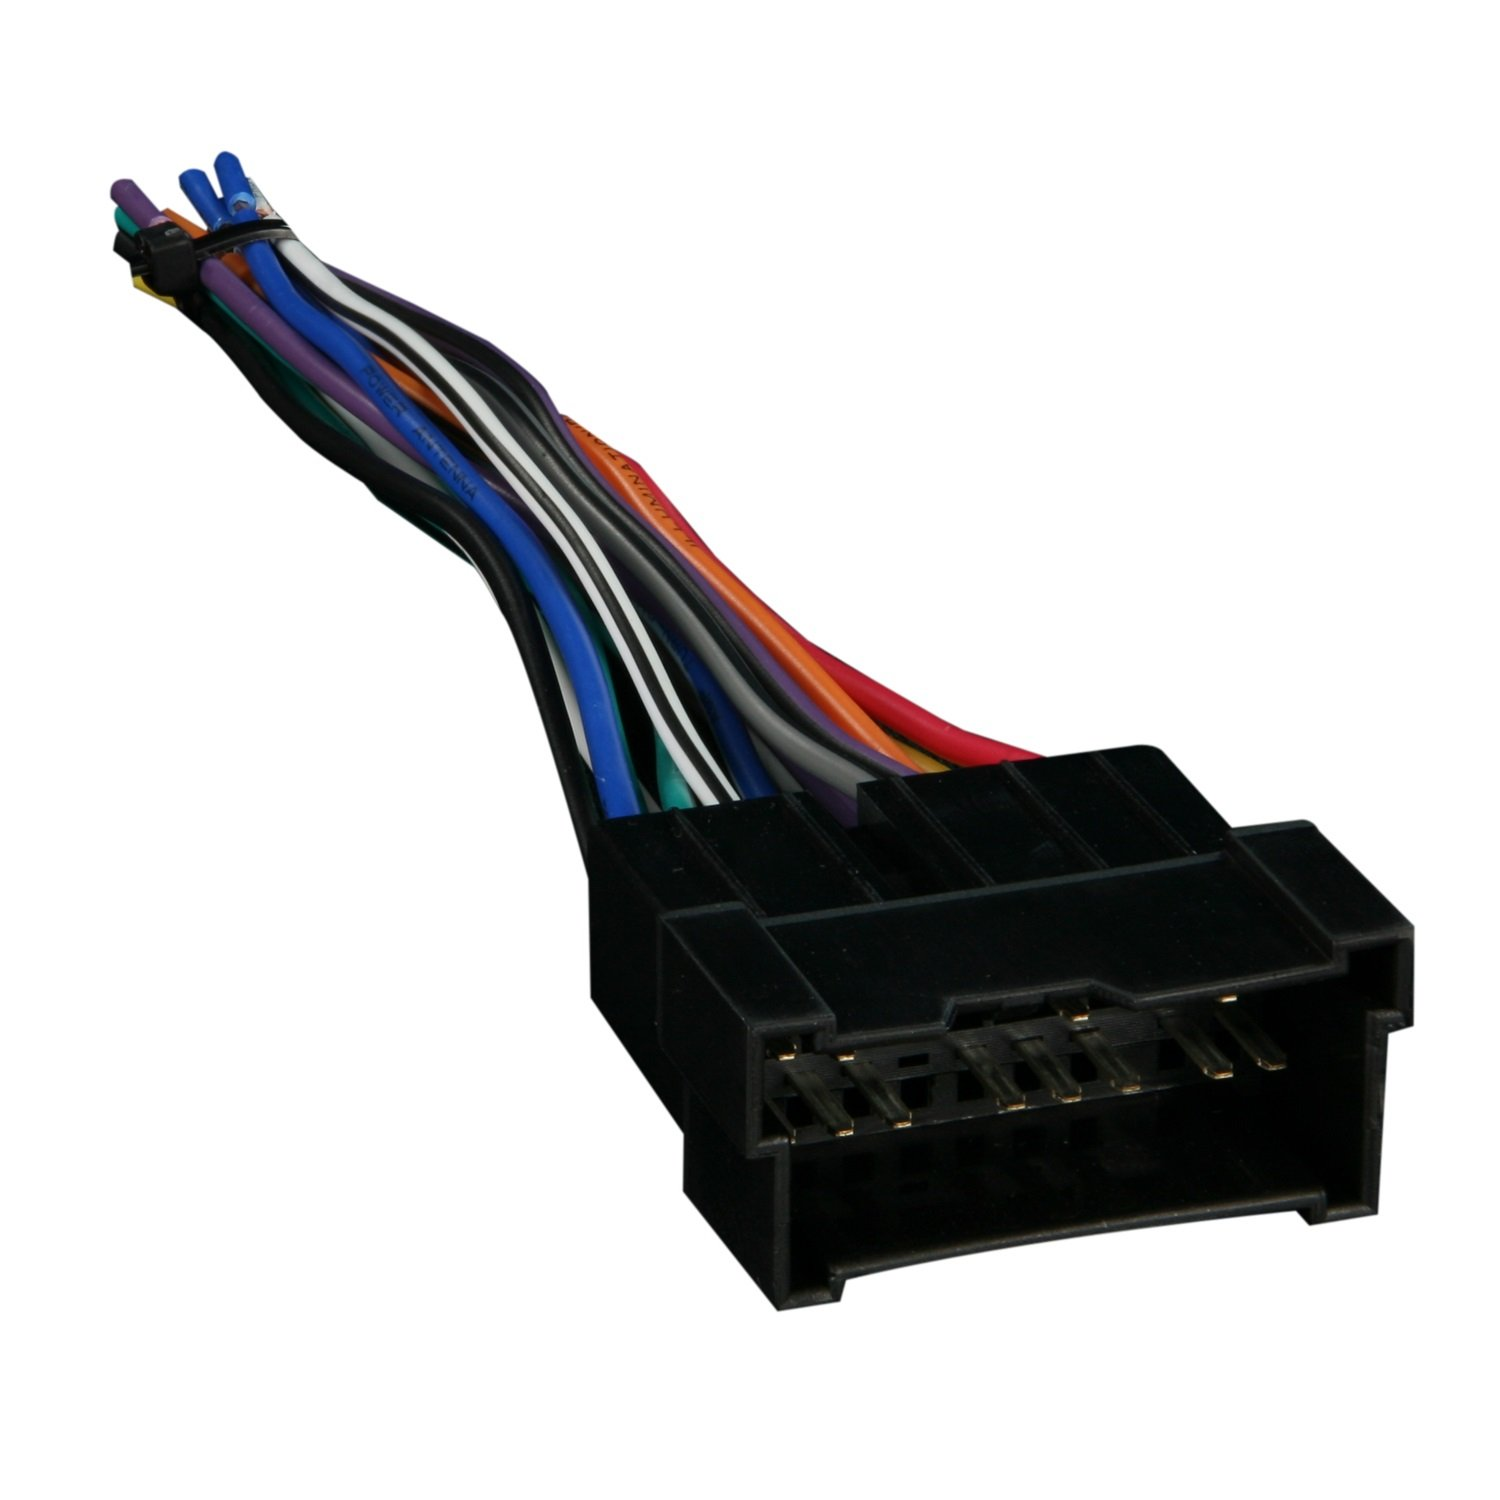 617yeBmOquL._SL1500_ amazon com metra 70 7301 radio wiring harness for hyundai kia 99  at crackthecode.co